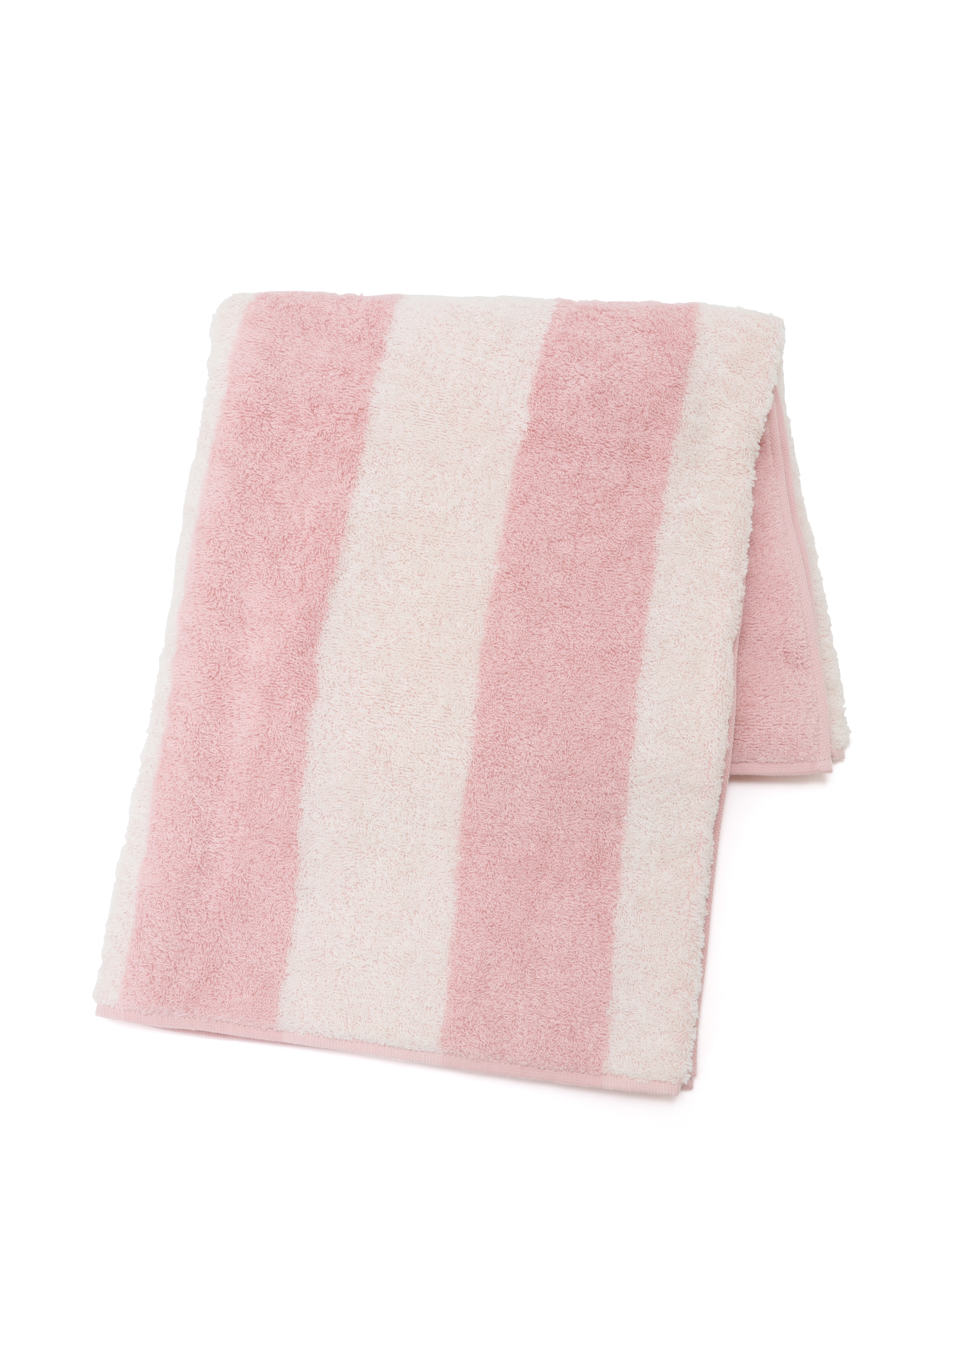 COTTON CANDY BATH TOWEL(F)